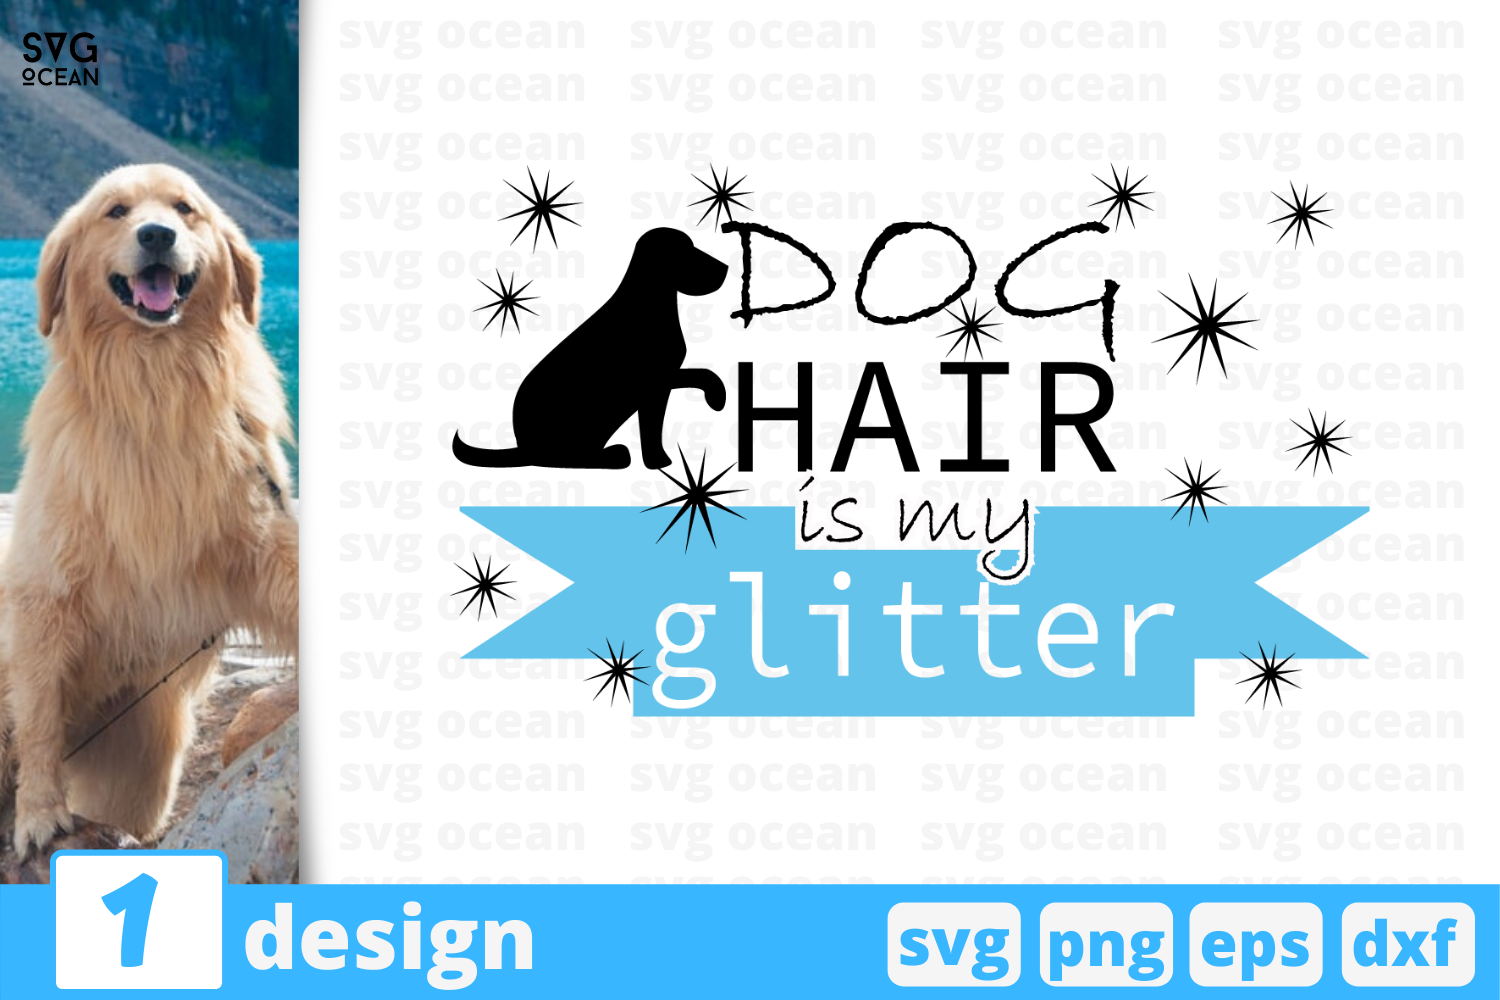 Download Free Dog Hair Is My Glitter Graphic By Svgocean Creative Fabrica for Cricut Explore, Silhouette and other cutting machines.